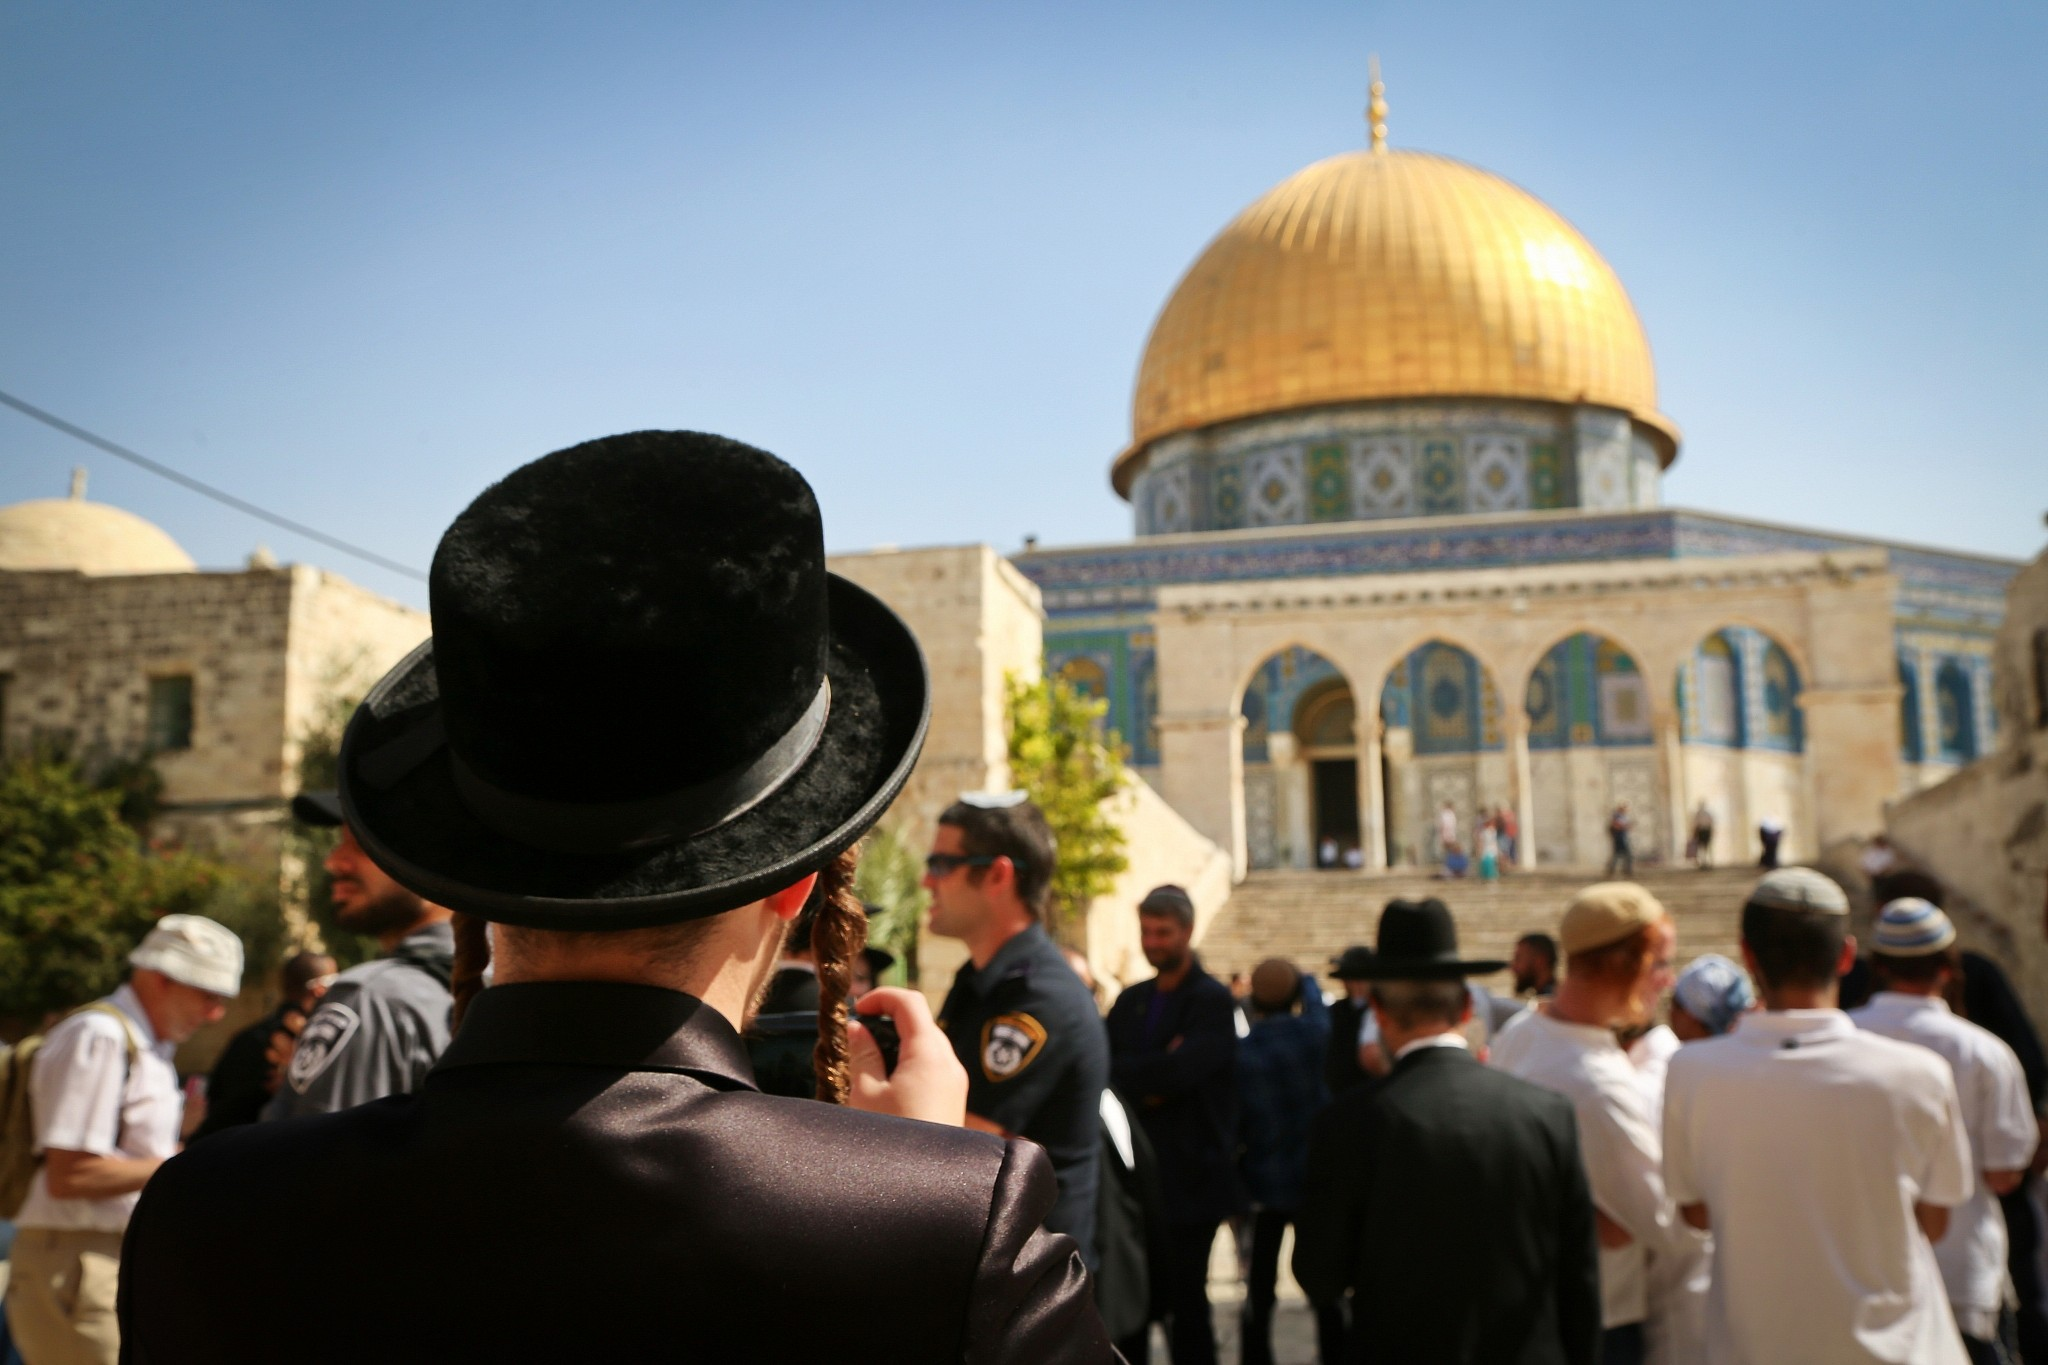 50 thousand settlers storm Joseph's Tomb and Al-Ibrahimi Mosque